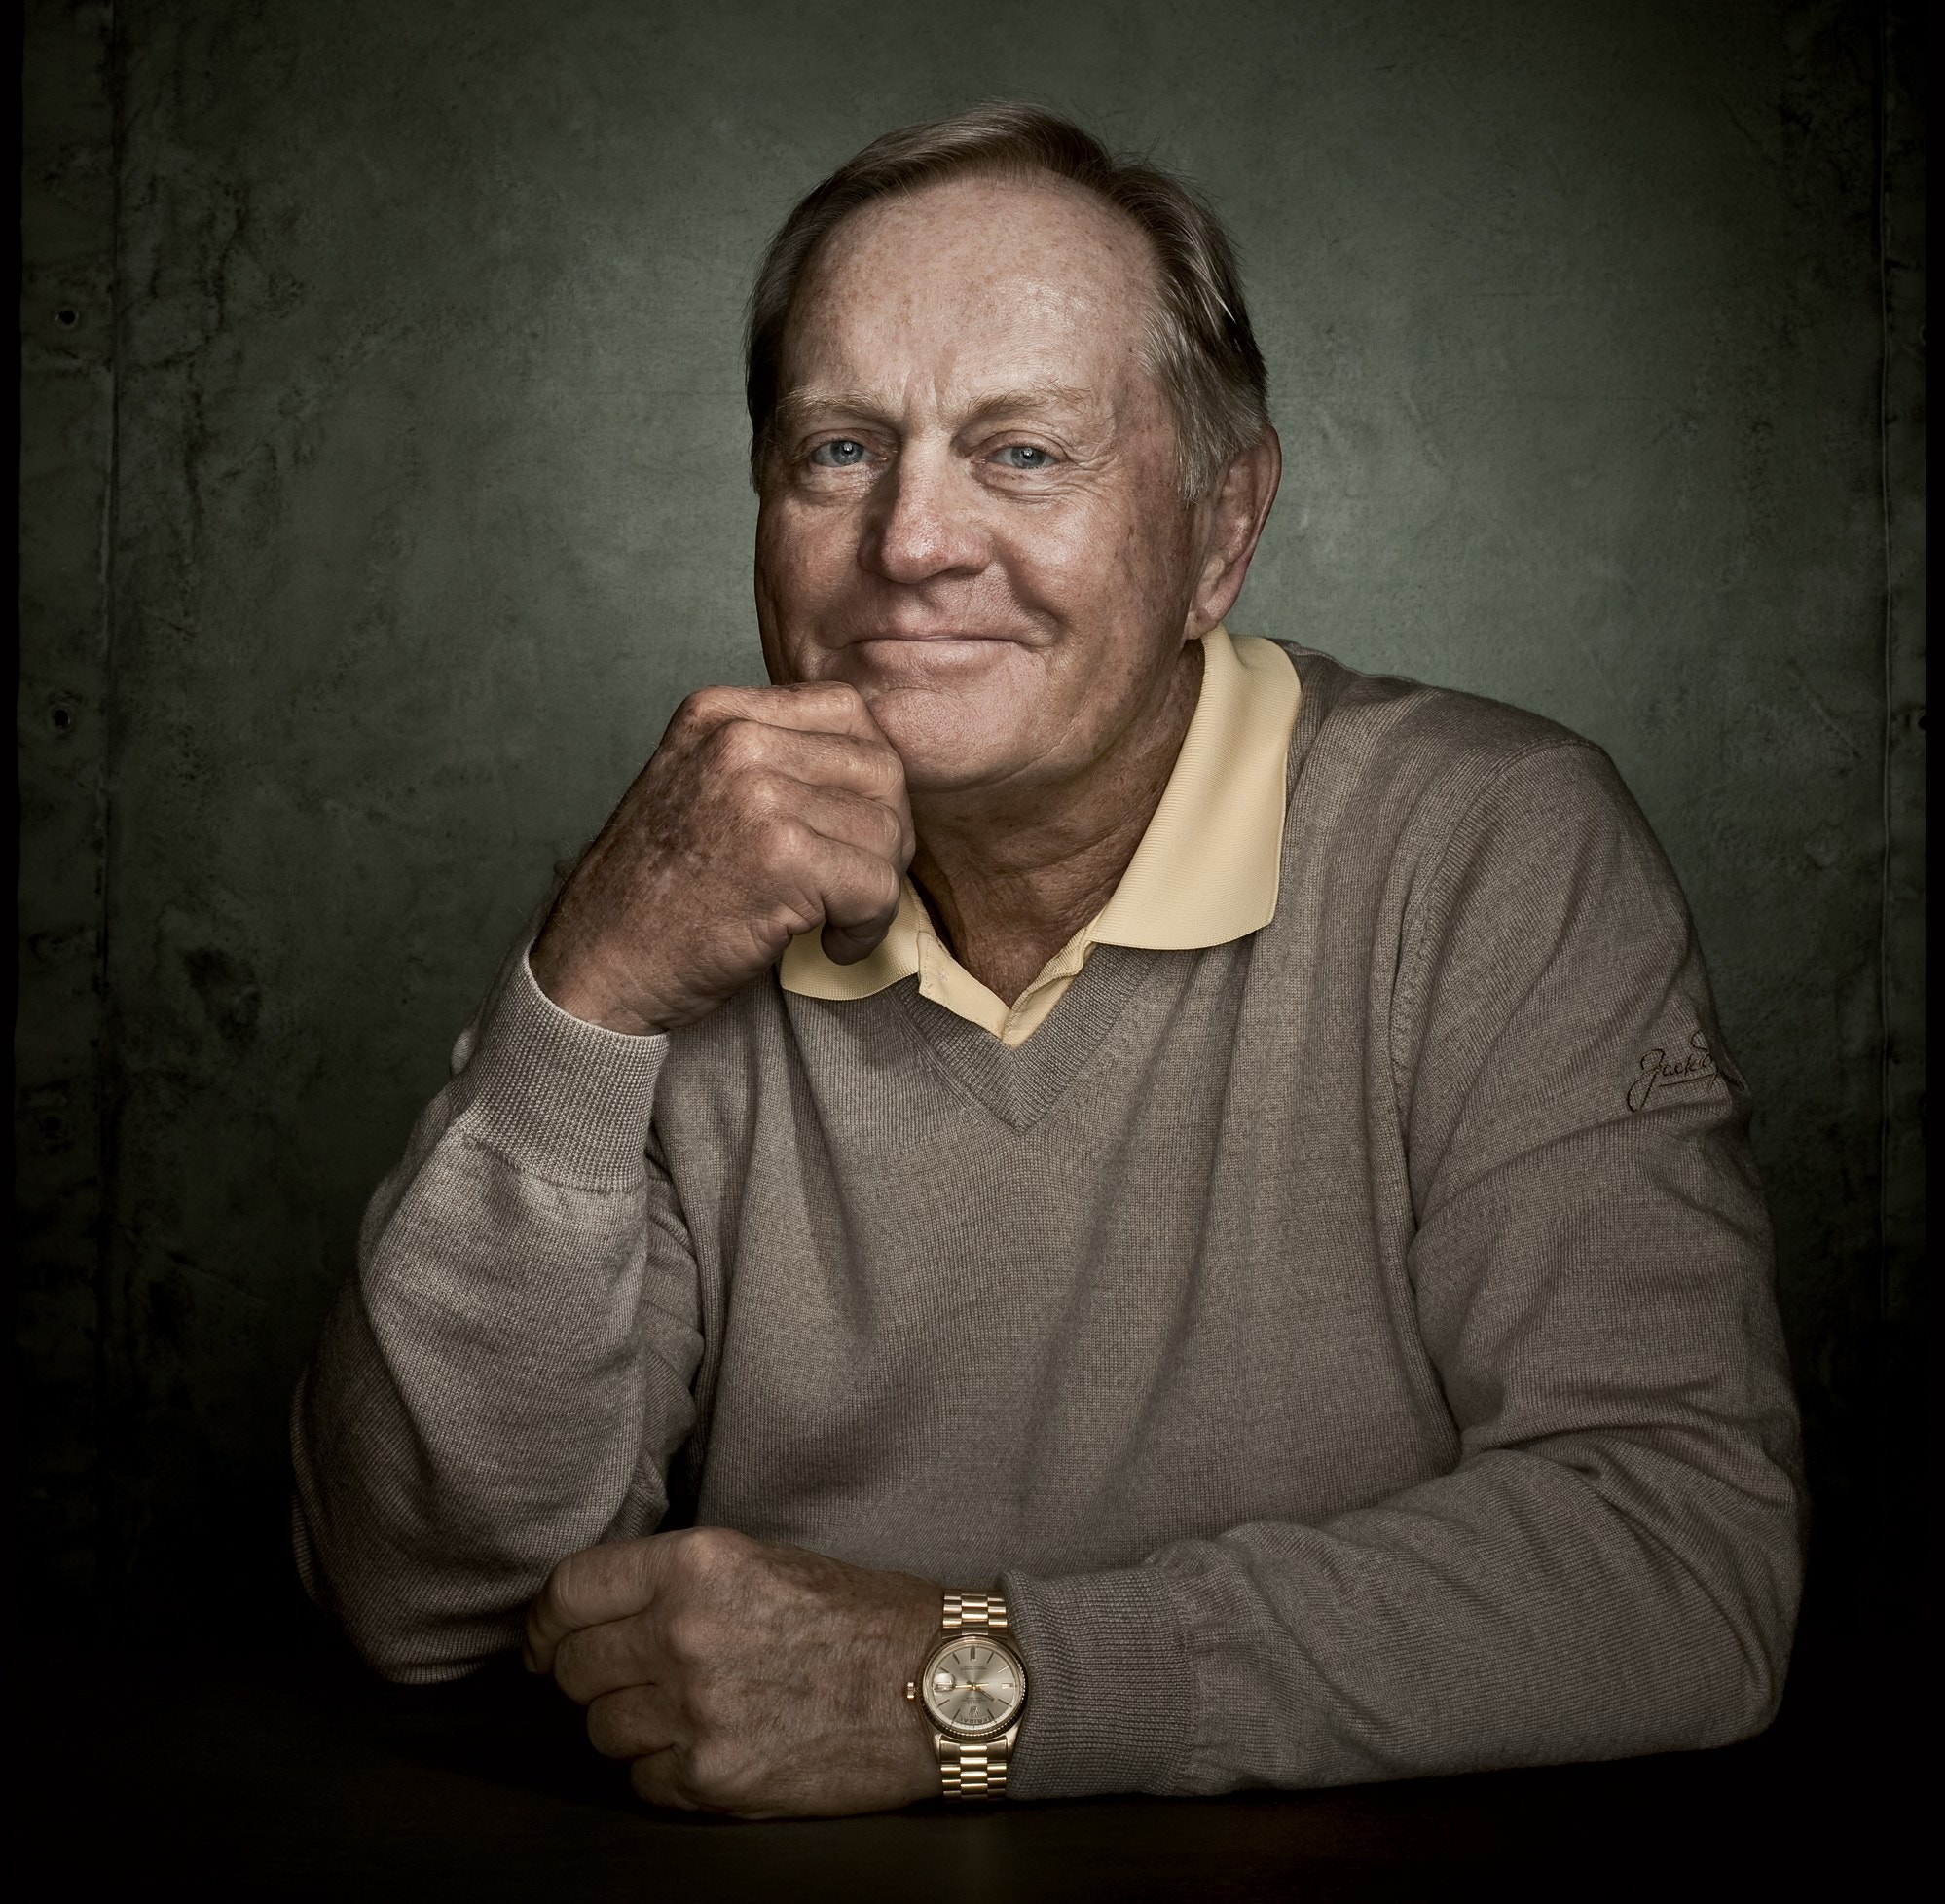 Jack Nicklaus:  At Age 80, He's Still The Standard For Excellence